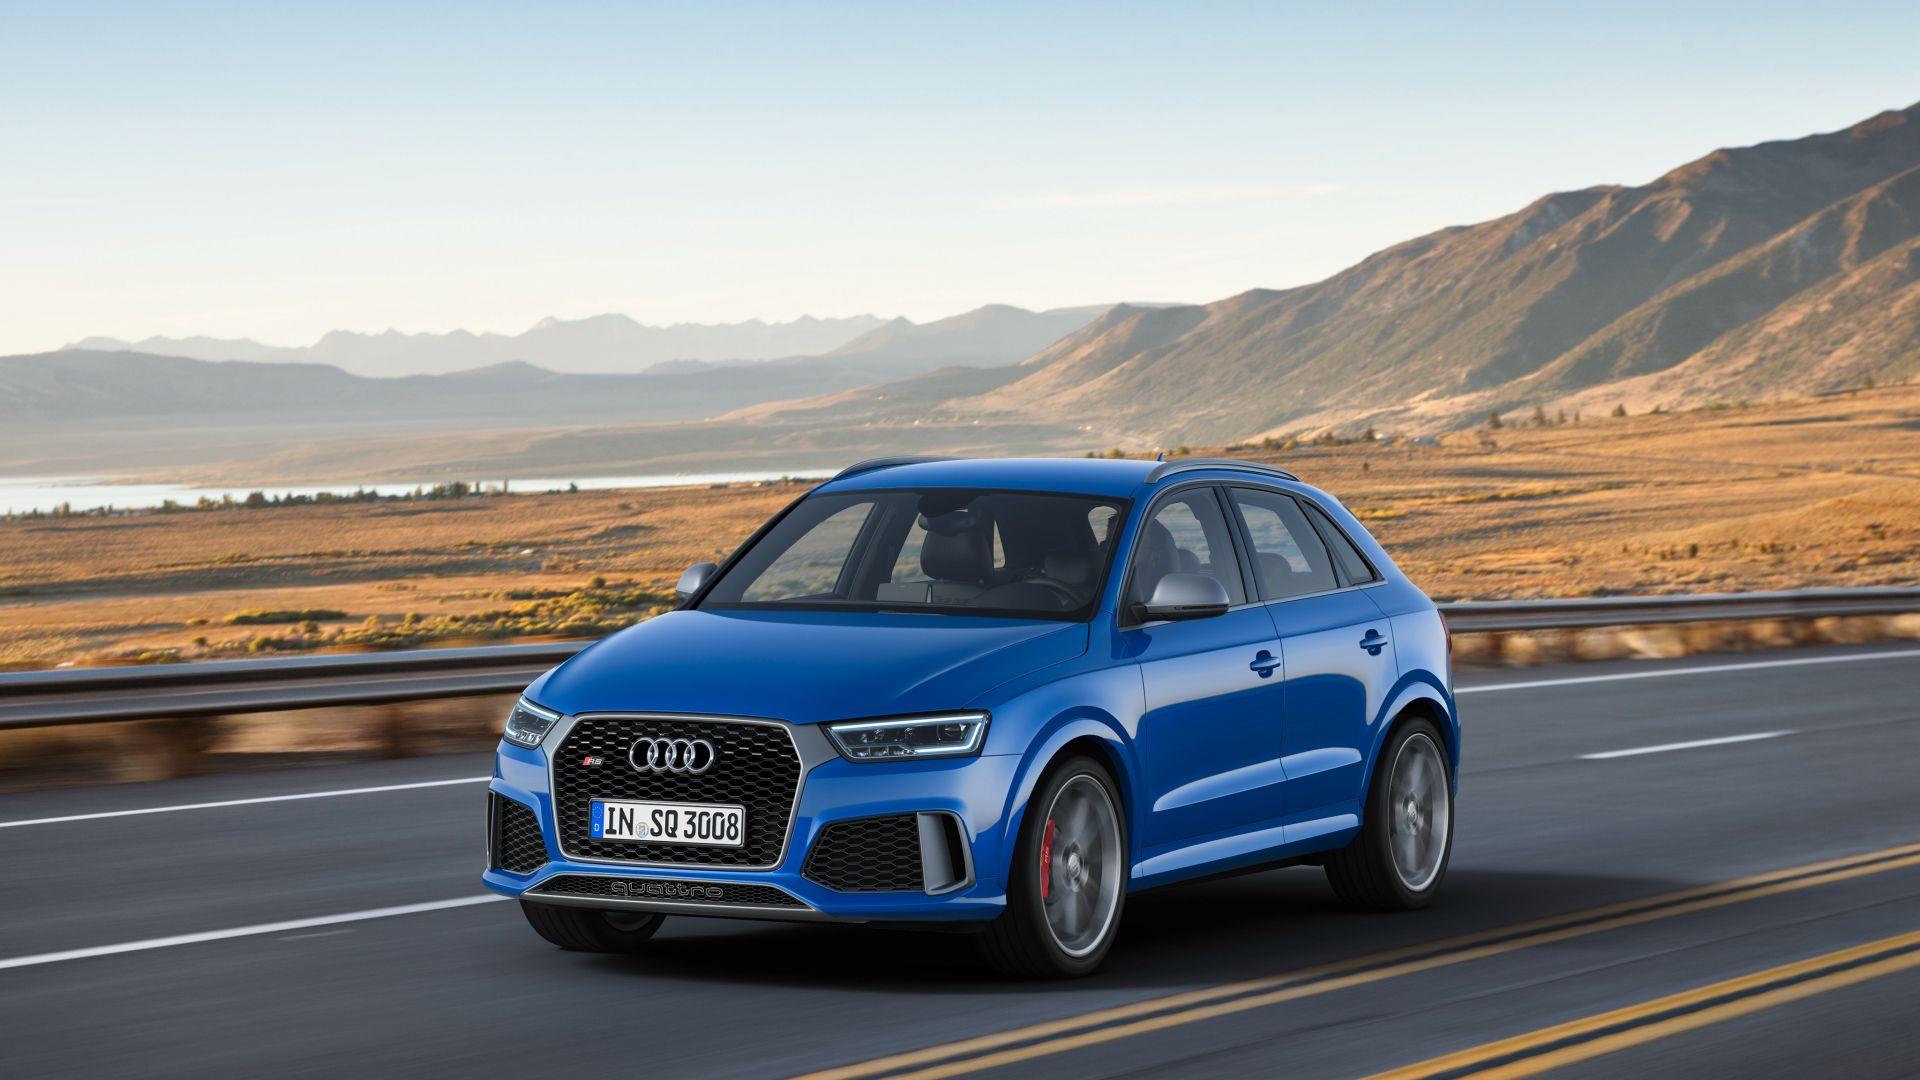 Audi RS Q3 performance (8U), Geneva Auto Show 2016, crossover, blue (horizontal)